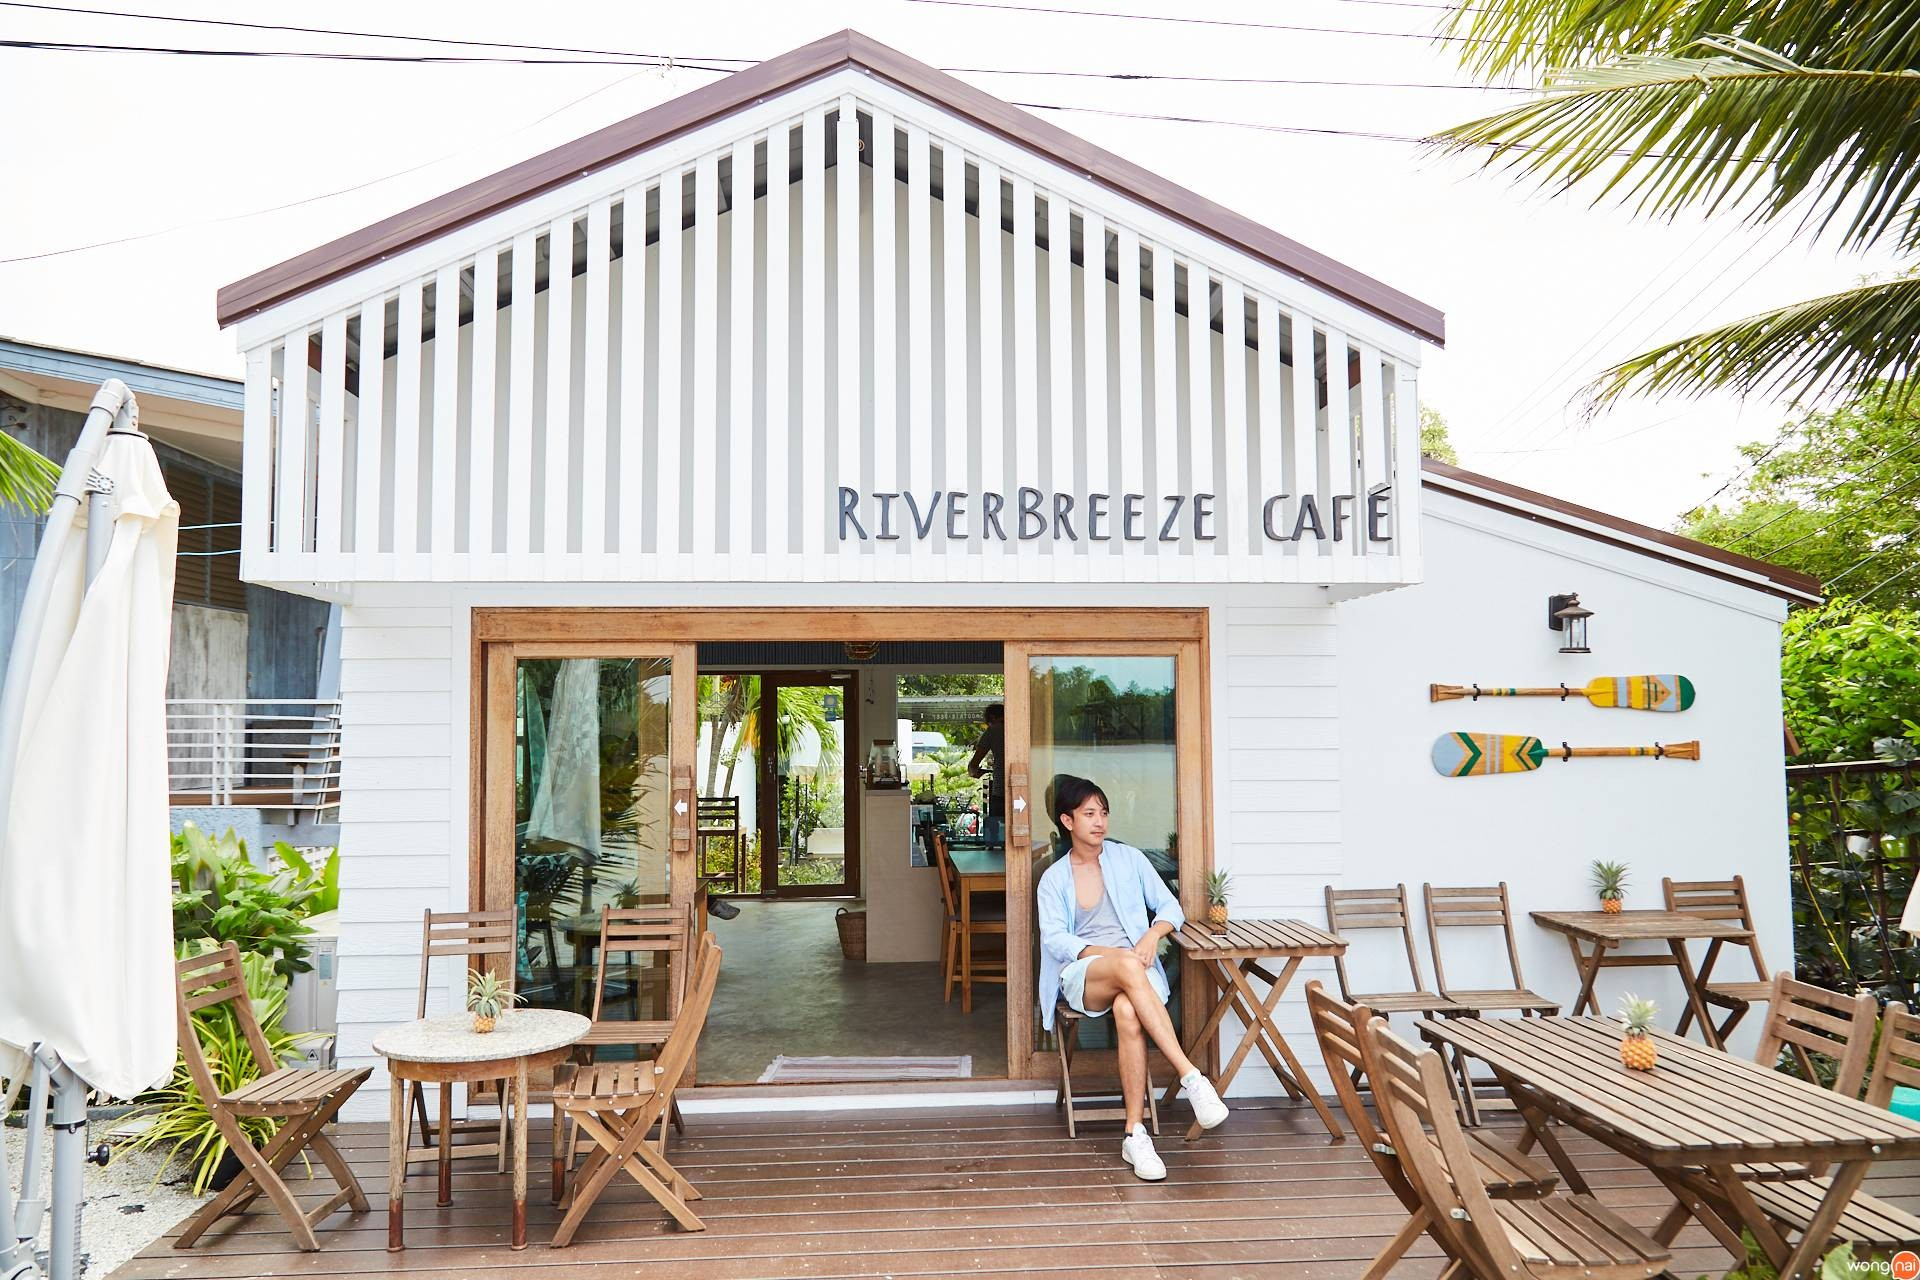 RiverBreeze Cafe